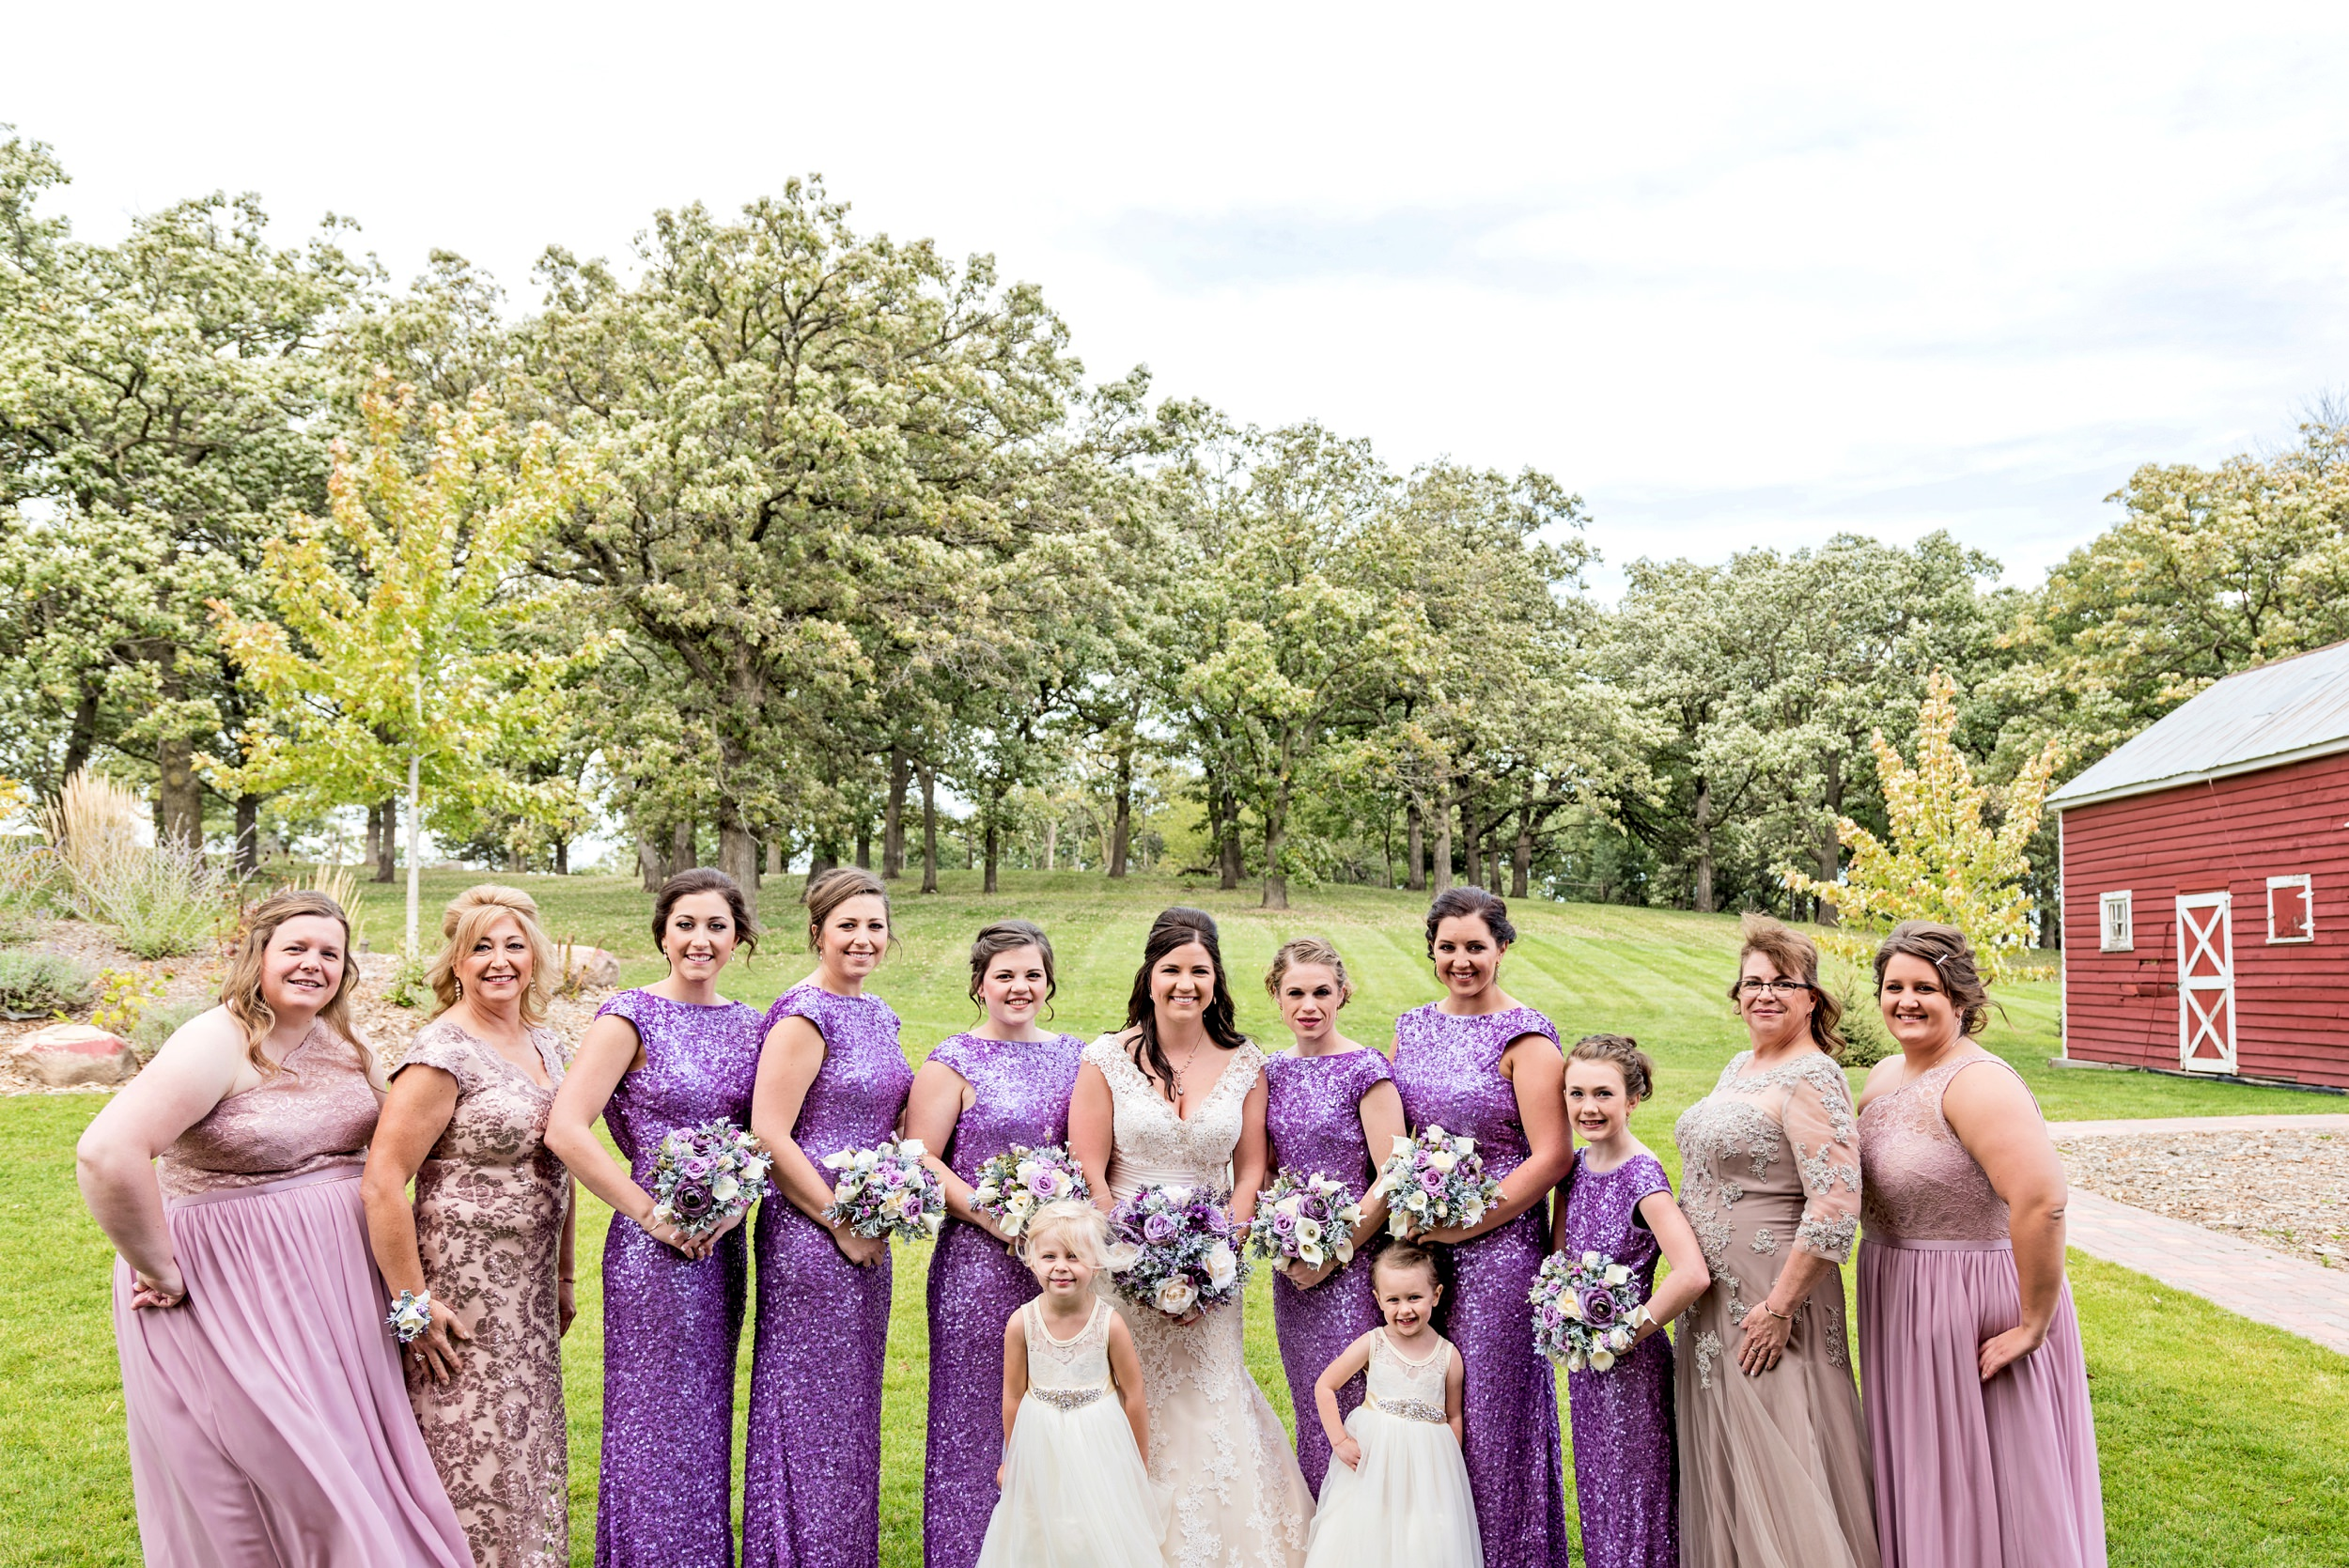 2018-Real-Wedding-Becky-Anthony-Rotella-Photography_0306.jpg